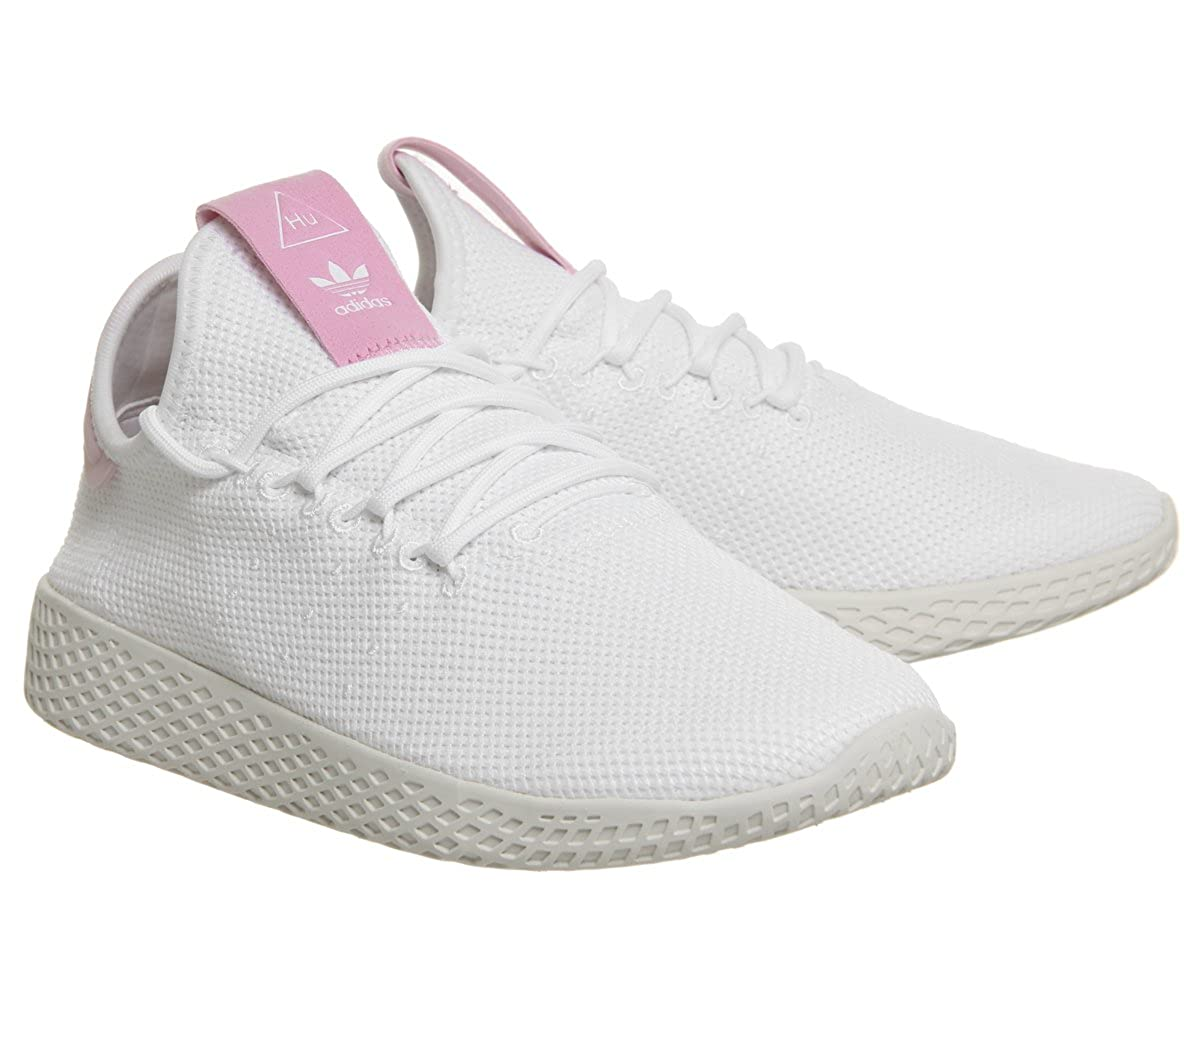 98edc150d4a9b adidas Originals Women s Pw Tennis Hu W Ftwwht Ftwwht Cwhite Sneakers - 8  UK India (42 EU)(DB2558)  Buy Online at Low Prices in India - Amazon.in